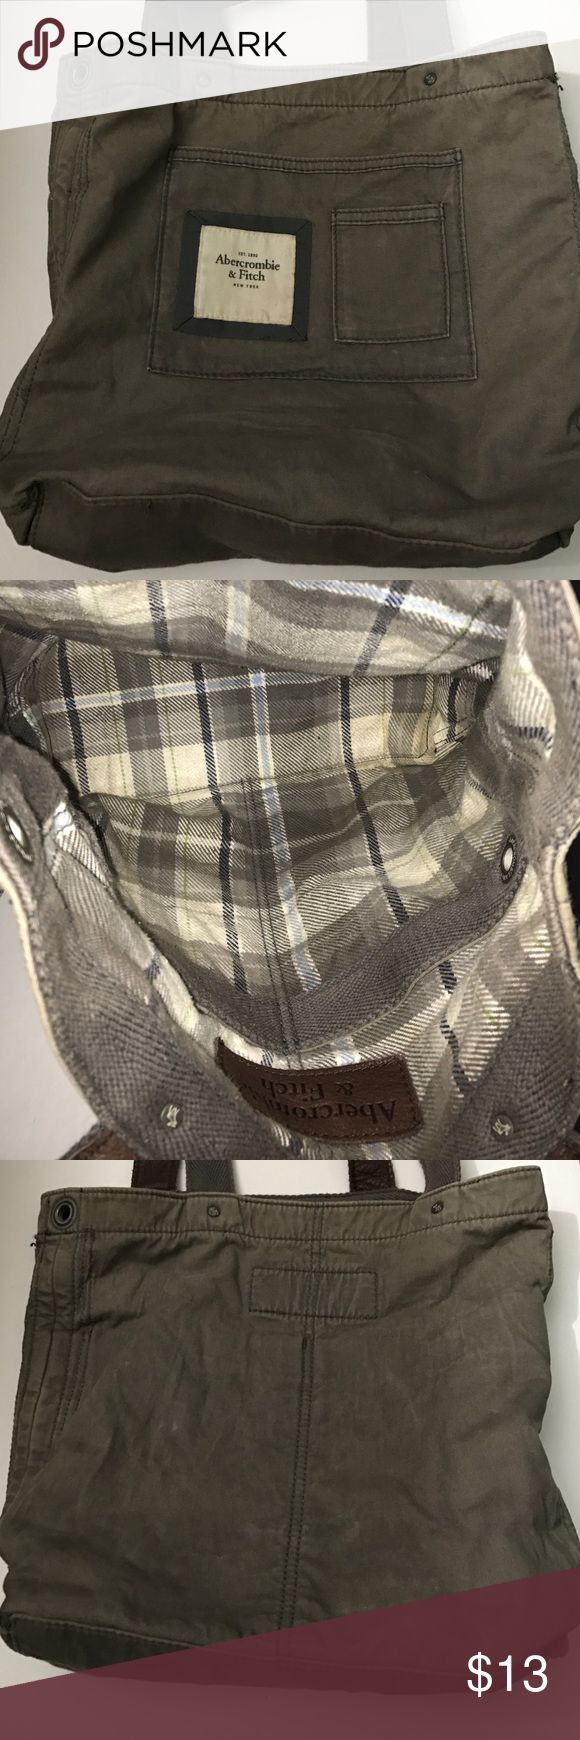 Abercrombie Tote Gently used, good condition. Minor wear used to go to picnics and pool. Cargo utility bag. Abercrombie & Fitch Bags Totes